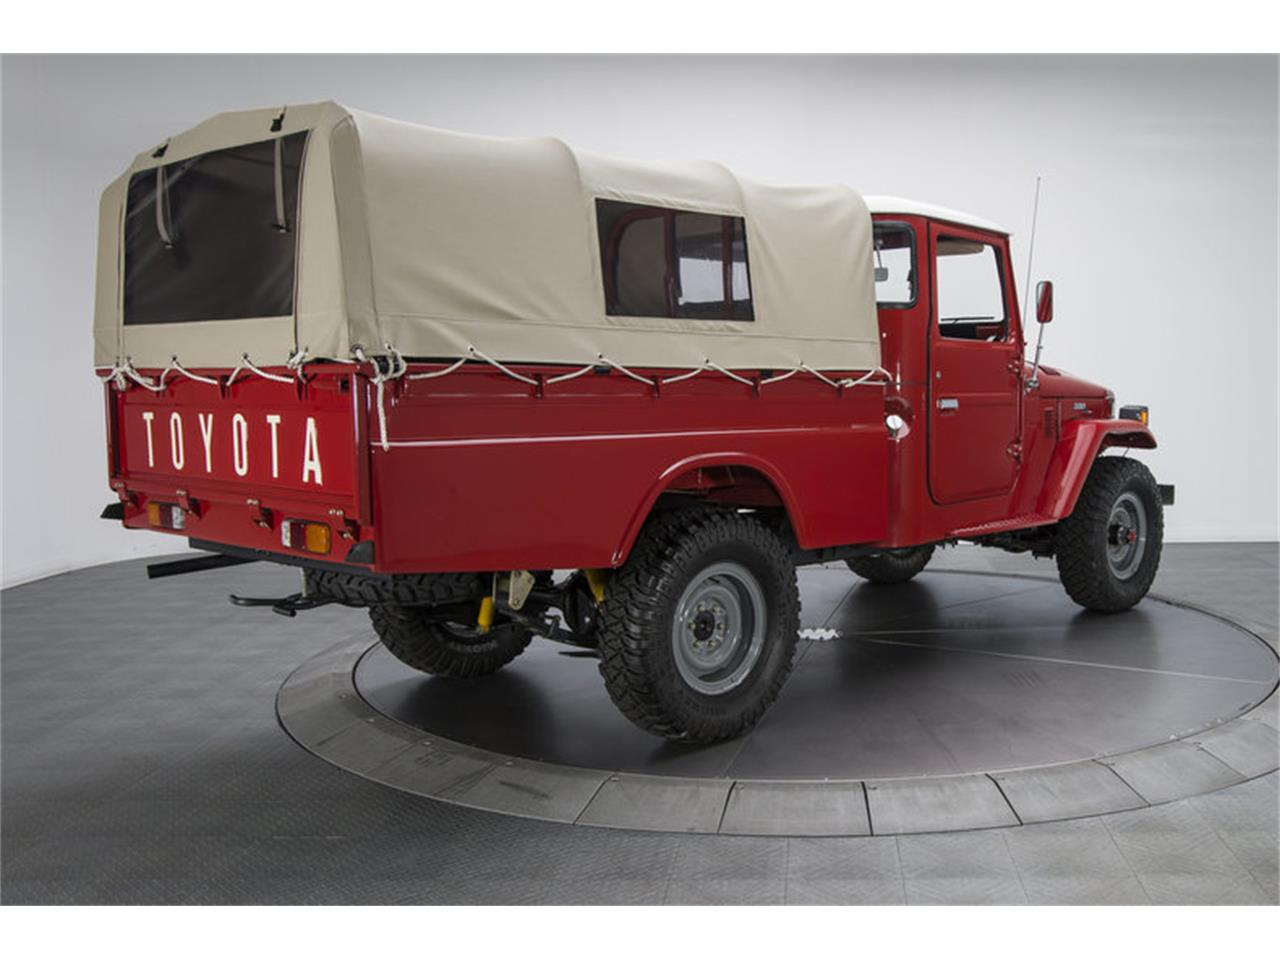 1976 Toyota Land Cruiser Fj45 Pickup For Sale Cc Large Picture Of 76 Mf1i